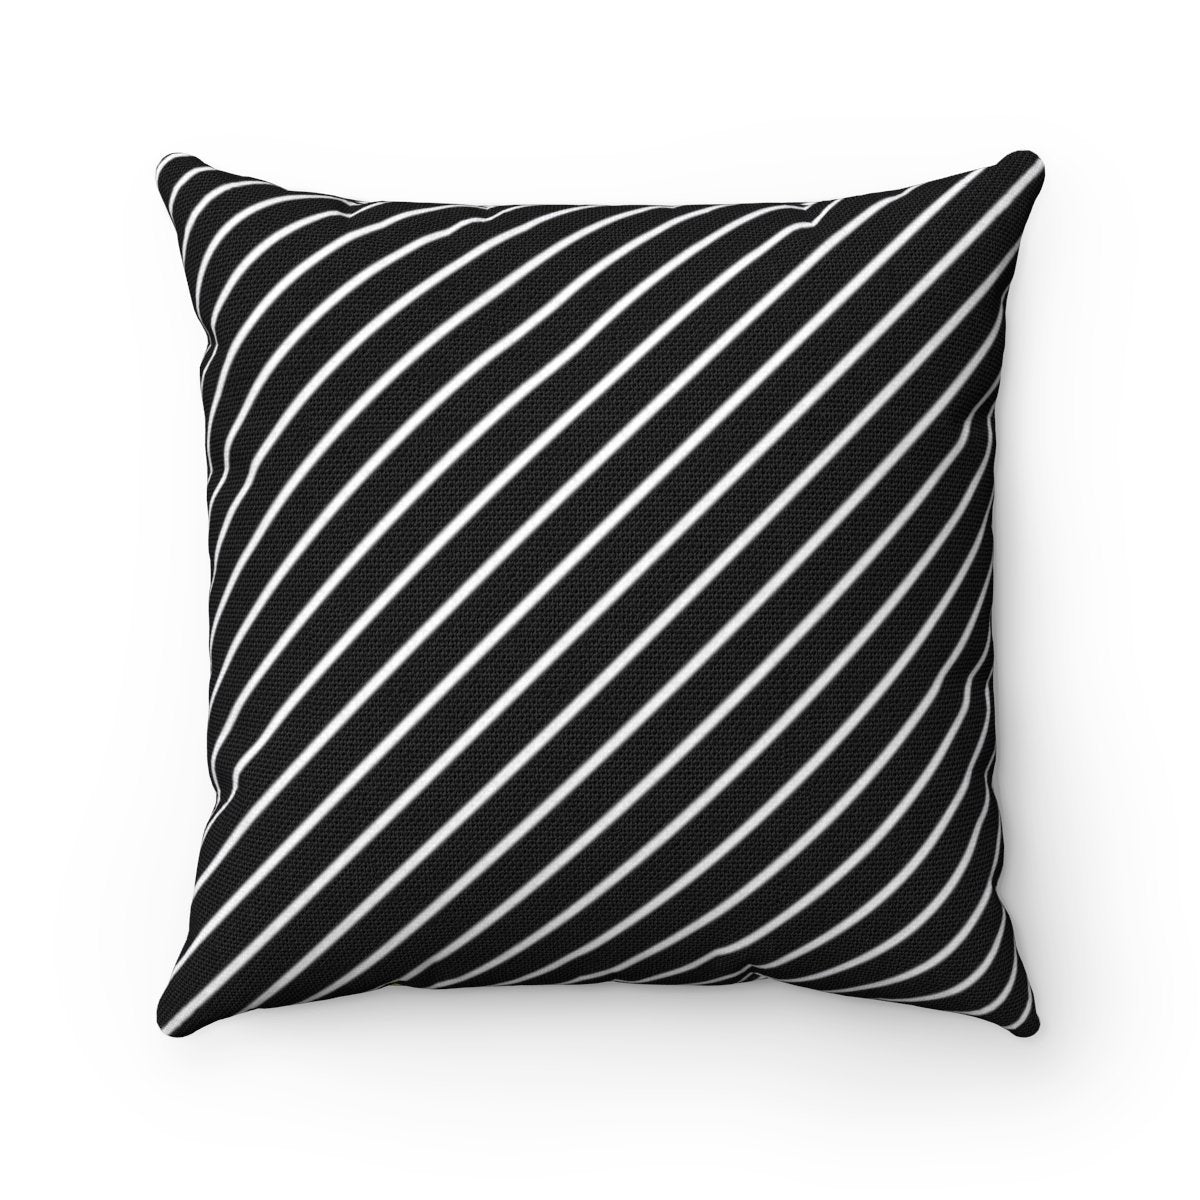 Valentine Floral Striped decorative cushion cover-Home Decor - Decorative Accents - Pillows & Throws - Decorative Pillows-Maison d'Elite-Très Elite